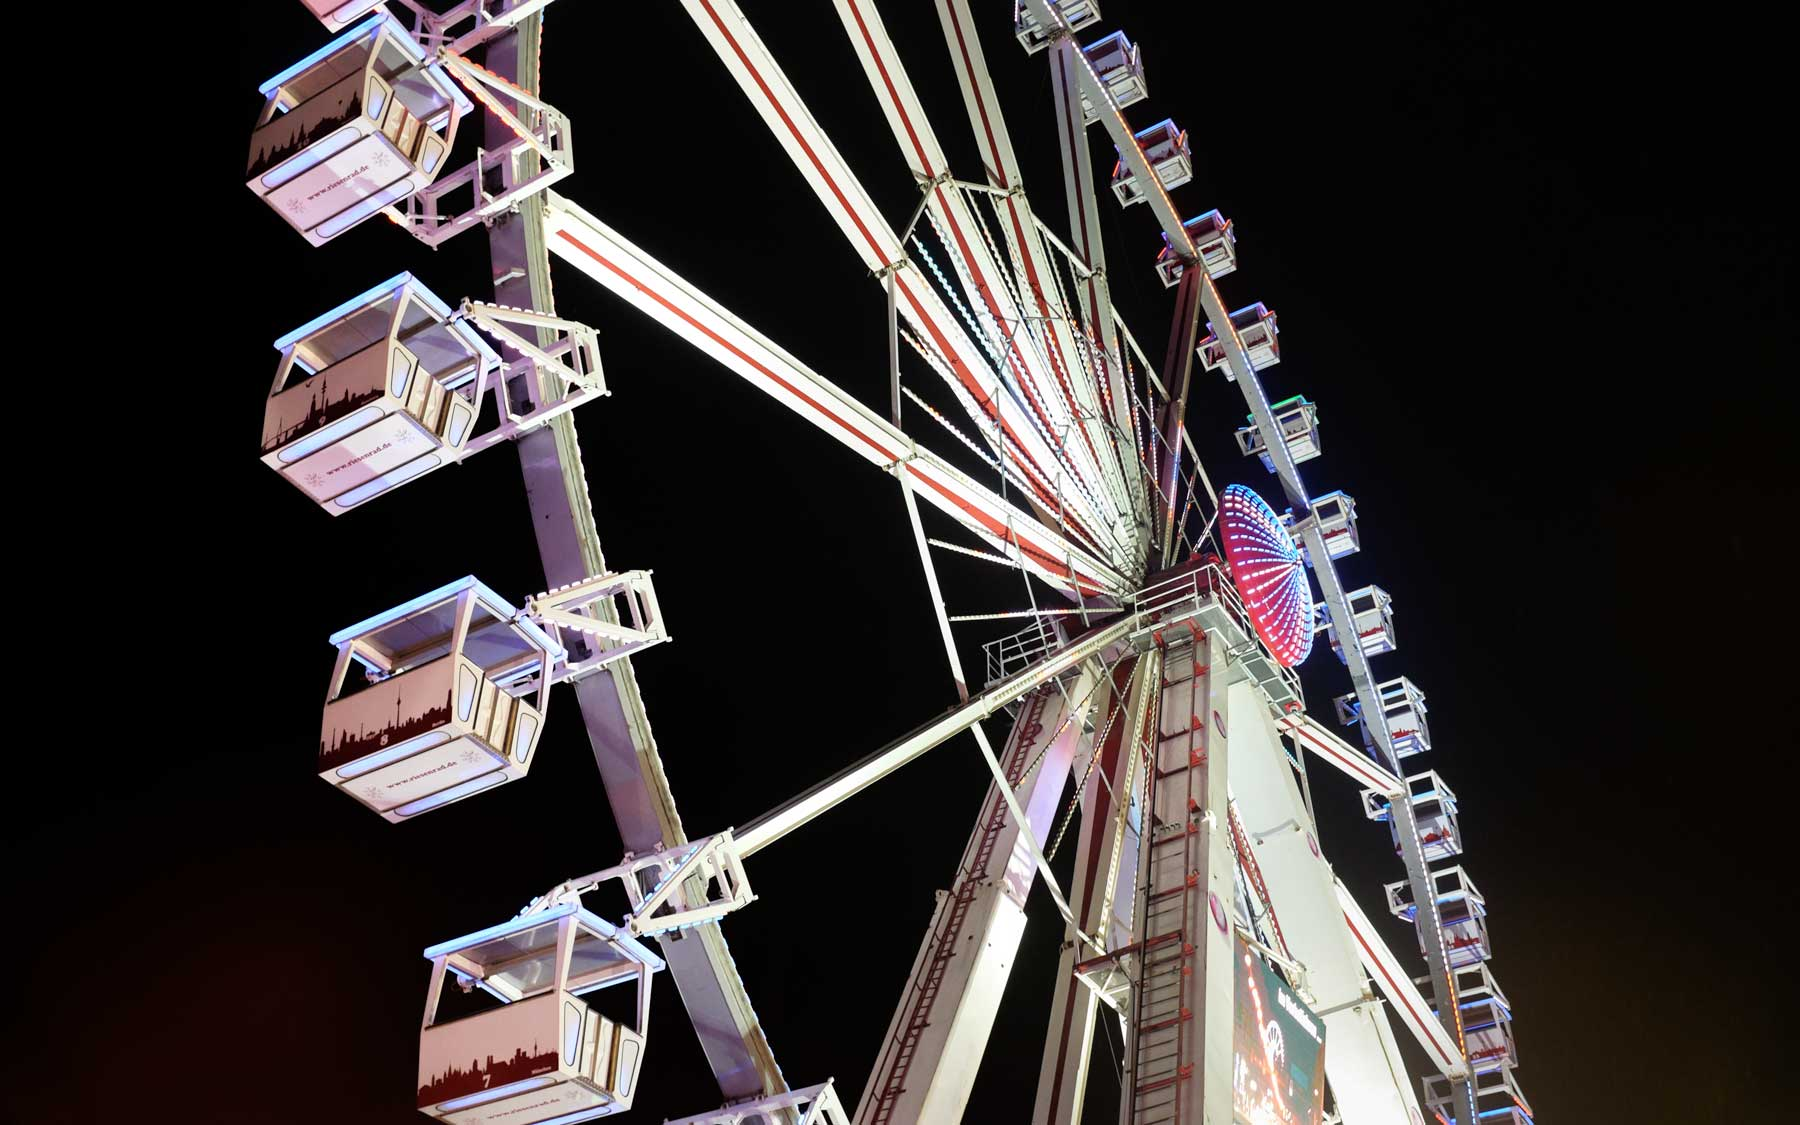 The Wheel in action at the Alexanderplatz Christmas Market